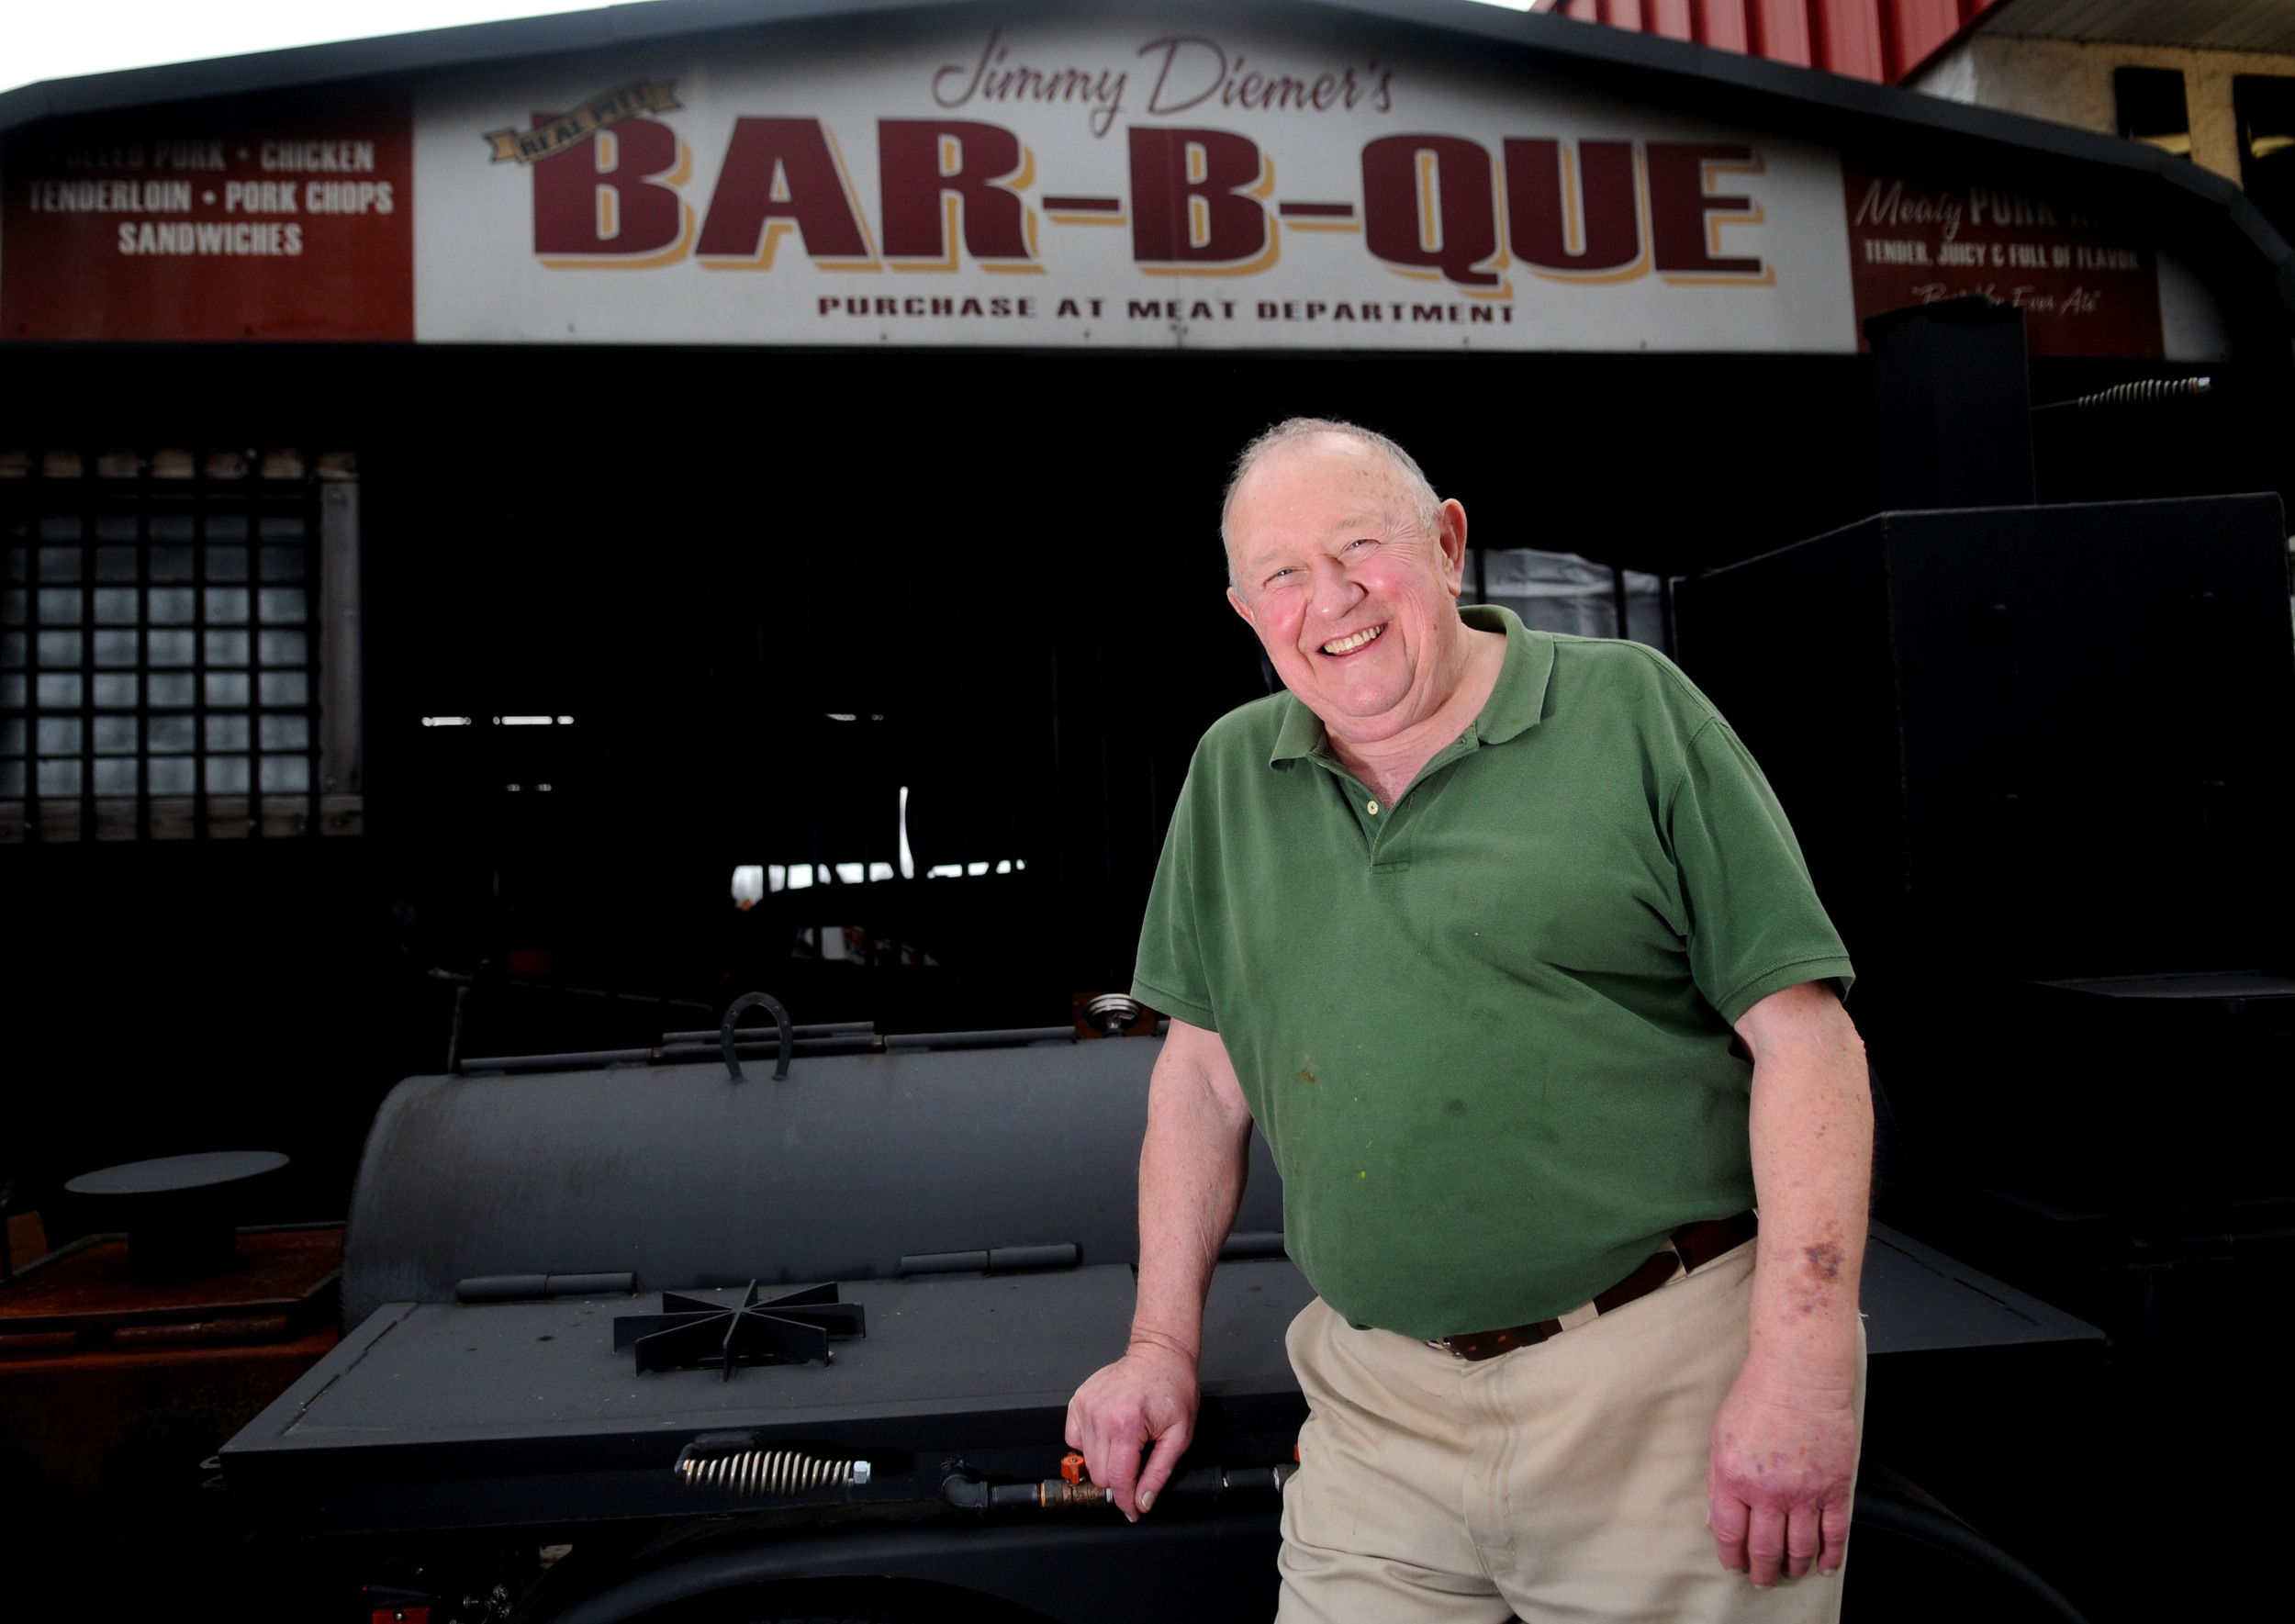 "1979 Western Kentucky graduate and Bowling Green native,Jimmy Daimer, first started selling barbeque six years ago out of a store he opened next to his property where he also owns rental properties. He started making barbecue because he couldn't find any that suited his tastes. ""If I could find good barbeque that I liked, I wouldn't be in this business."""